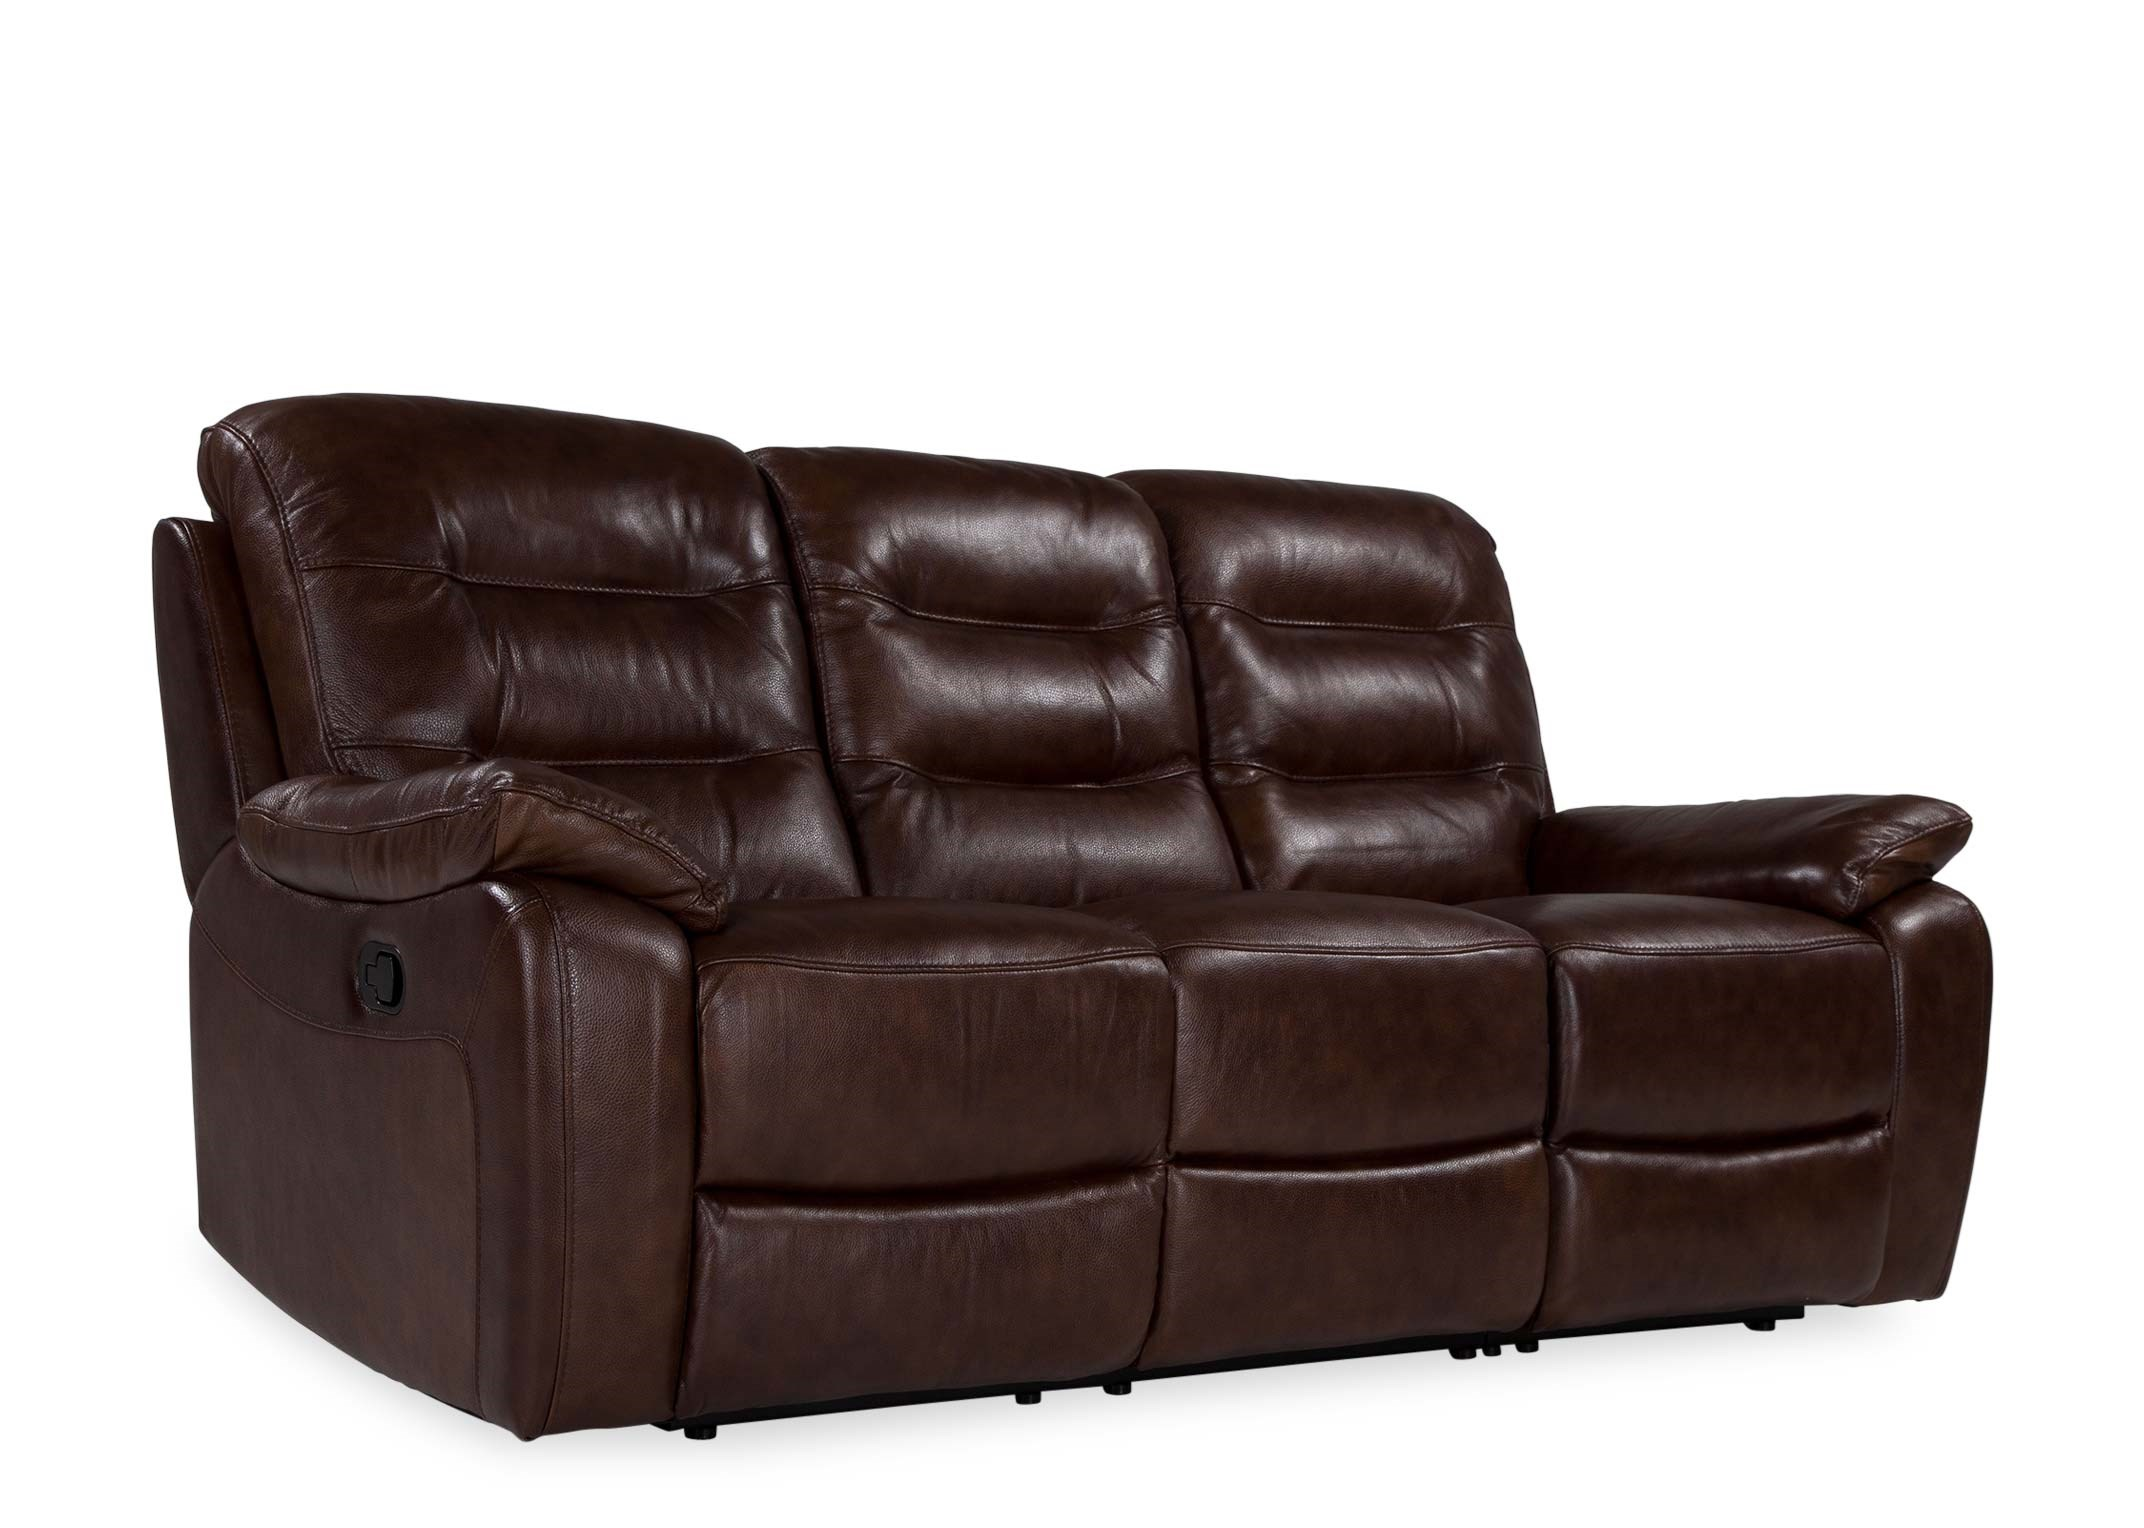 Picture of: 3 Seater Brown Leather Reclining Sofa Navona Ez Living Furniture